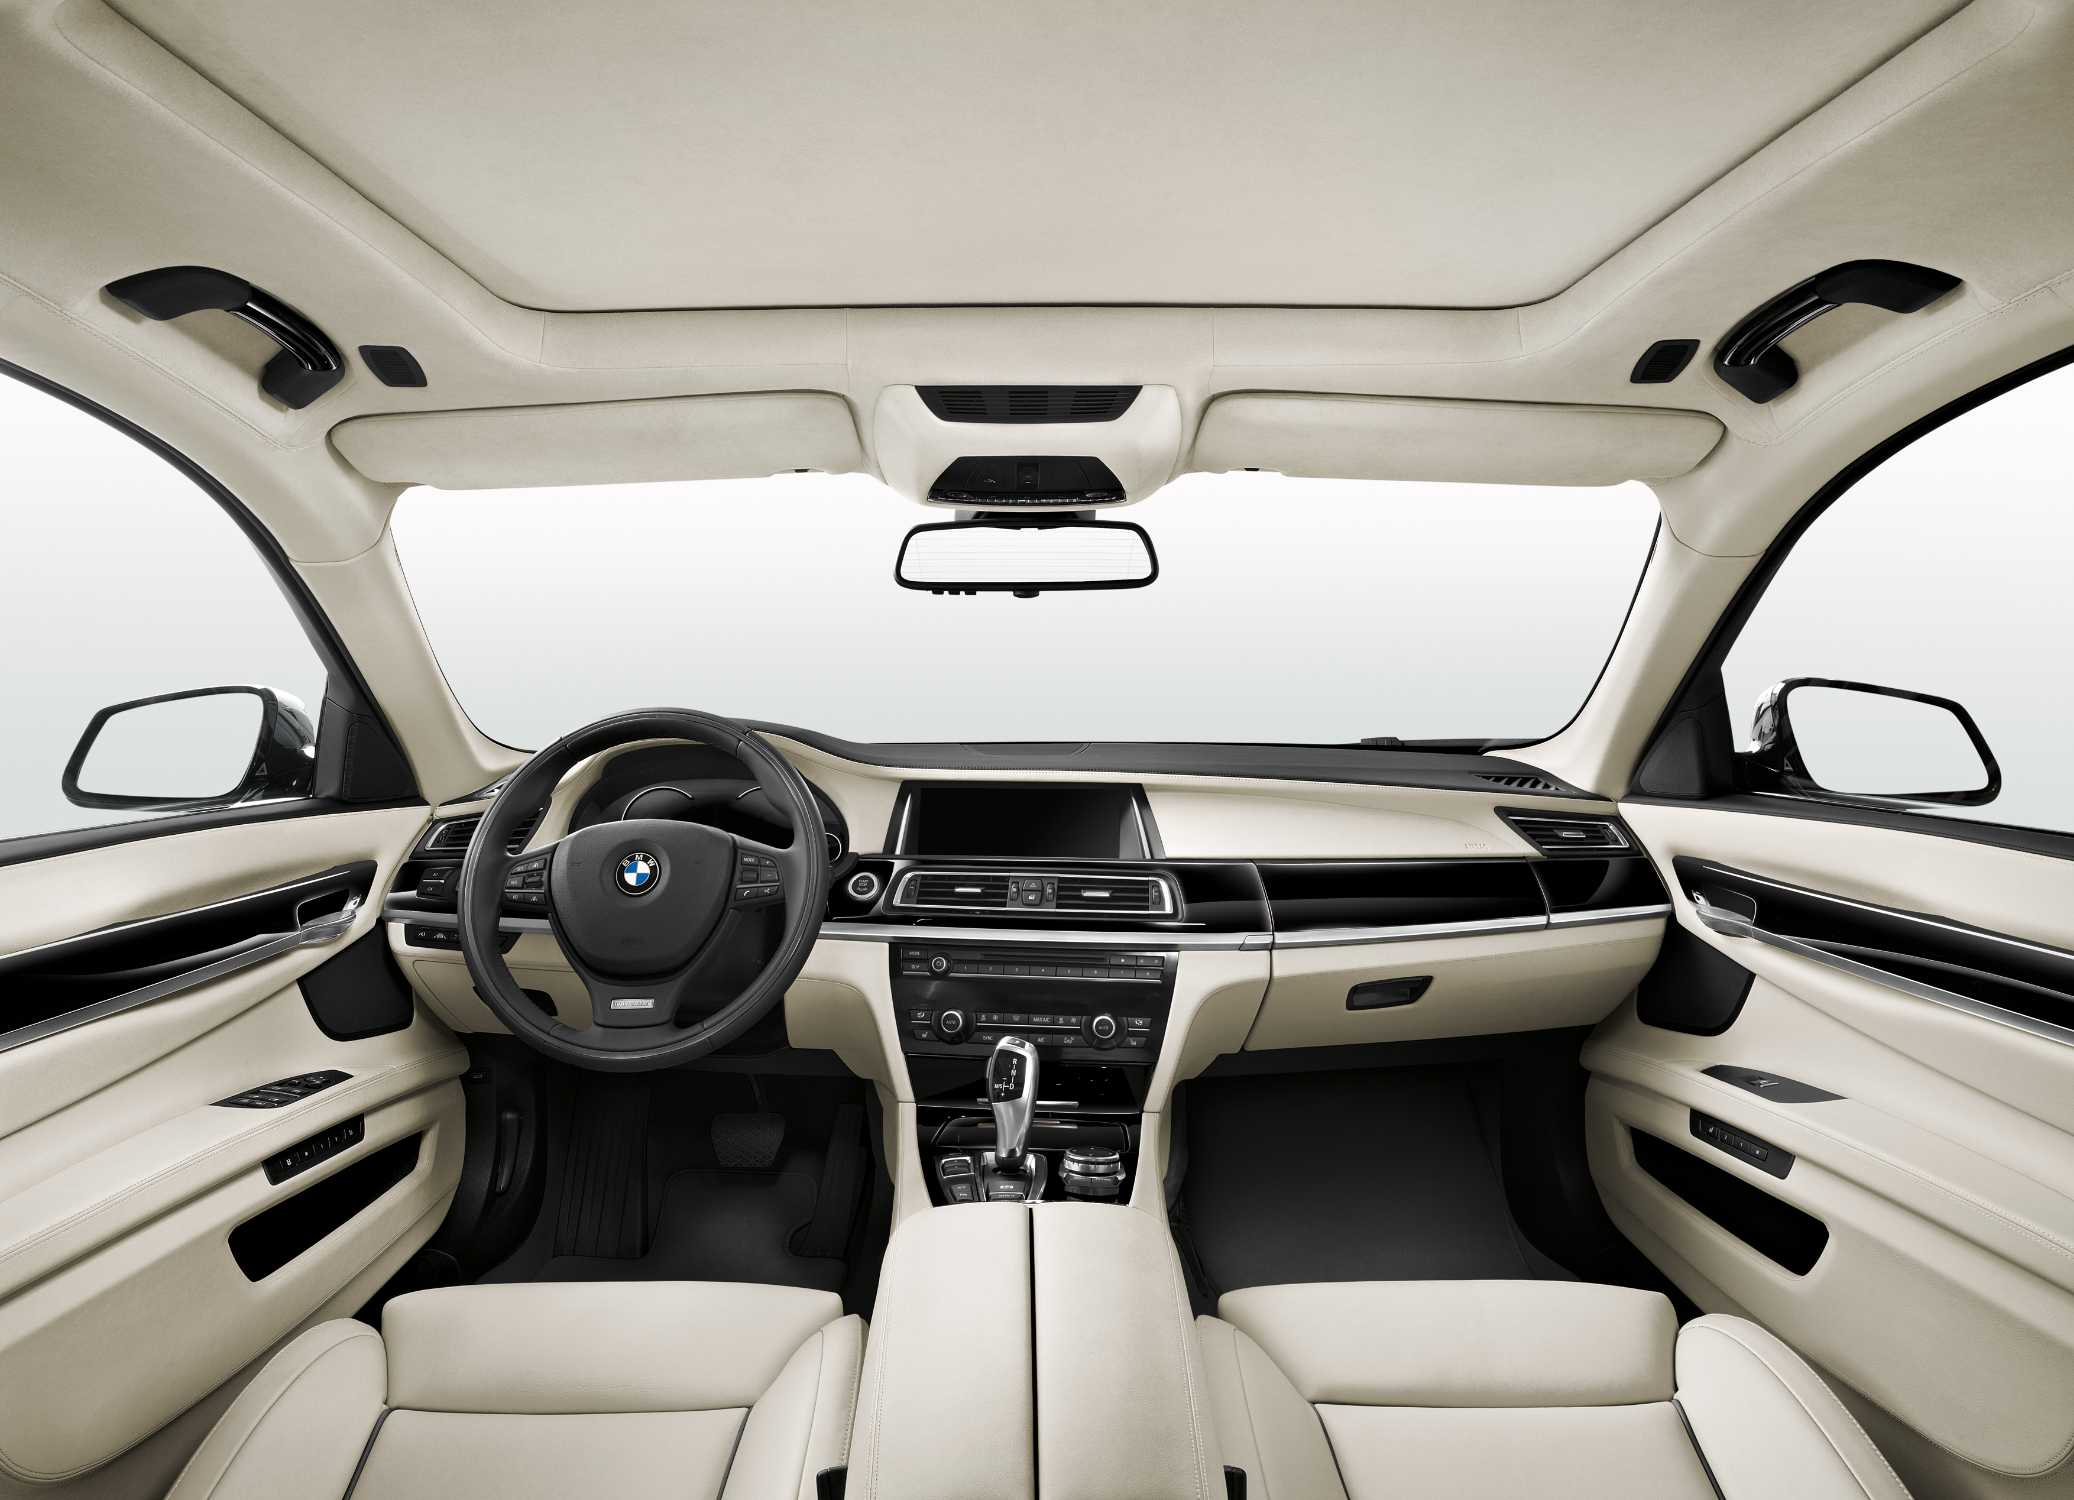 BMW 730d Edition Exclusive Interior Individual Leather Merino Platinum 05 2014